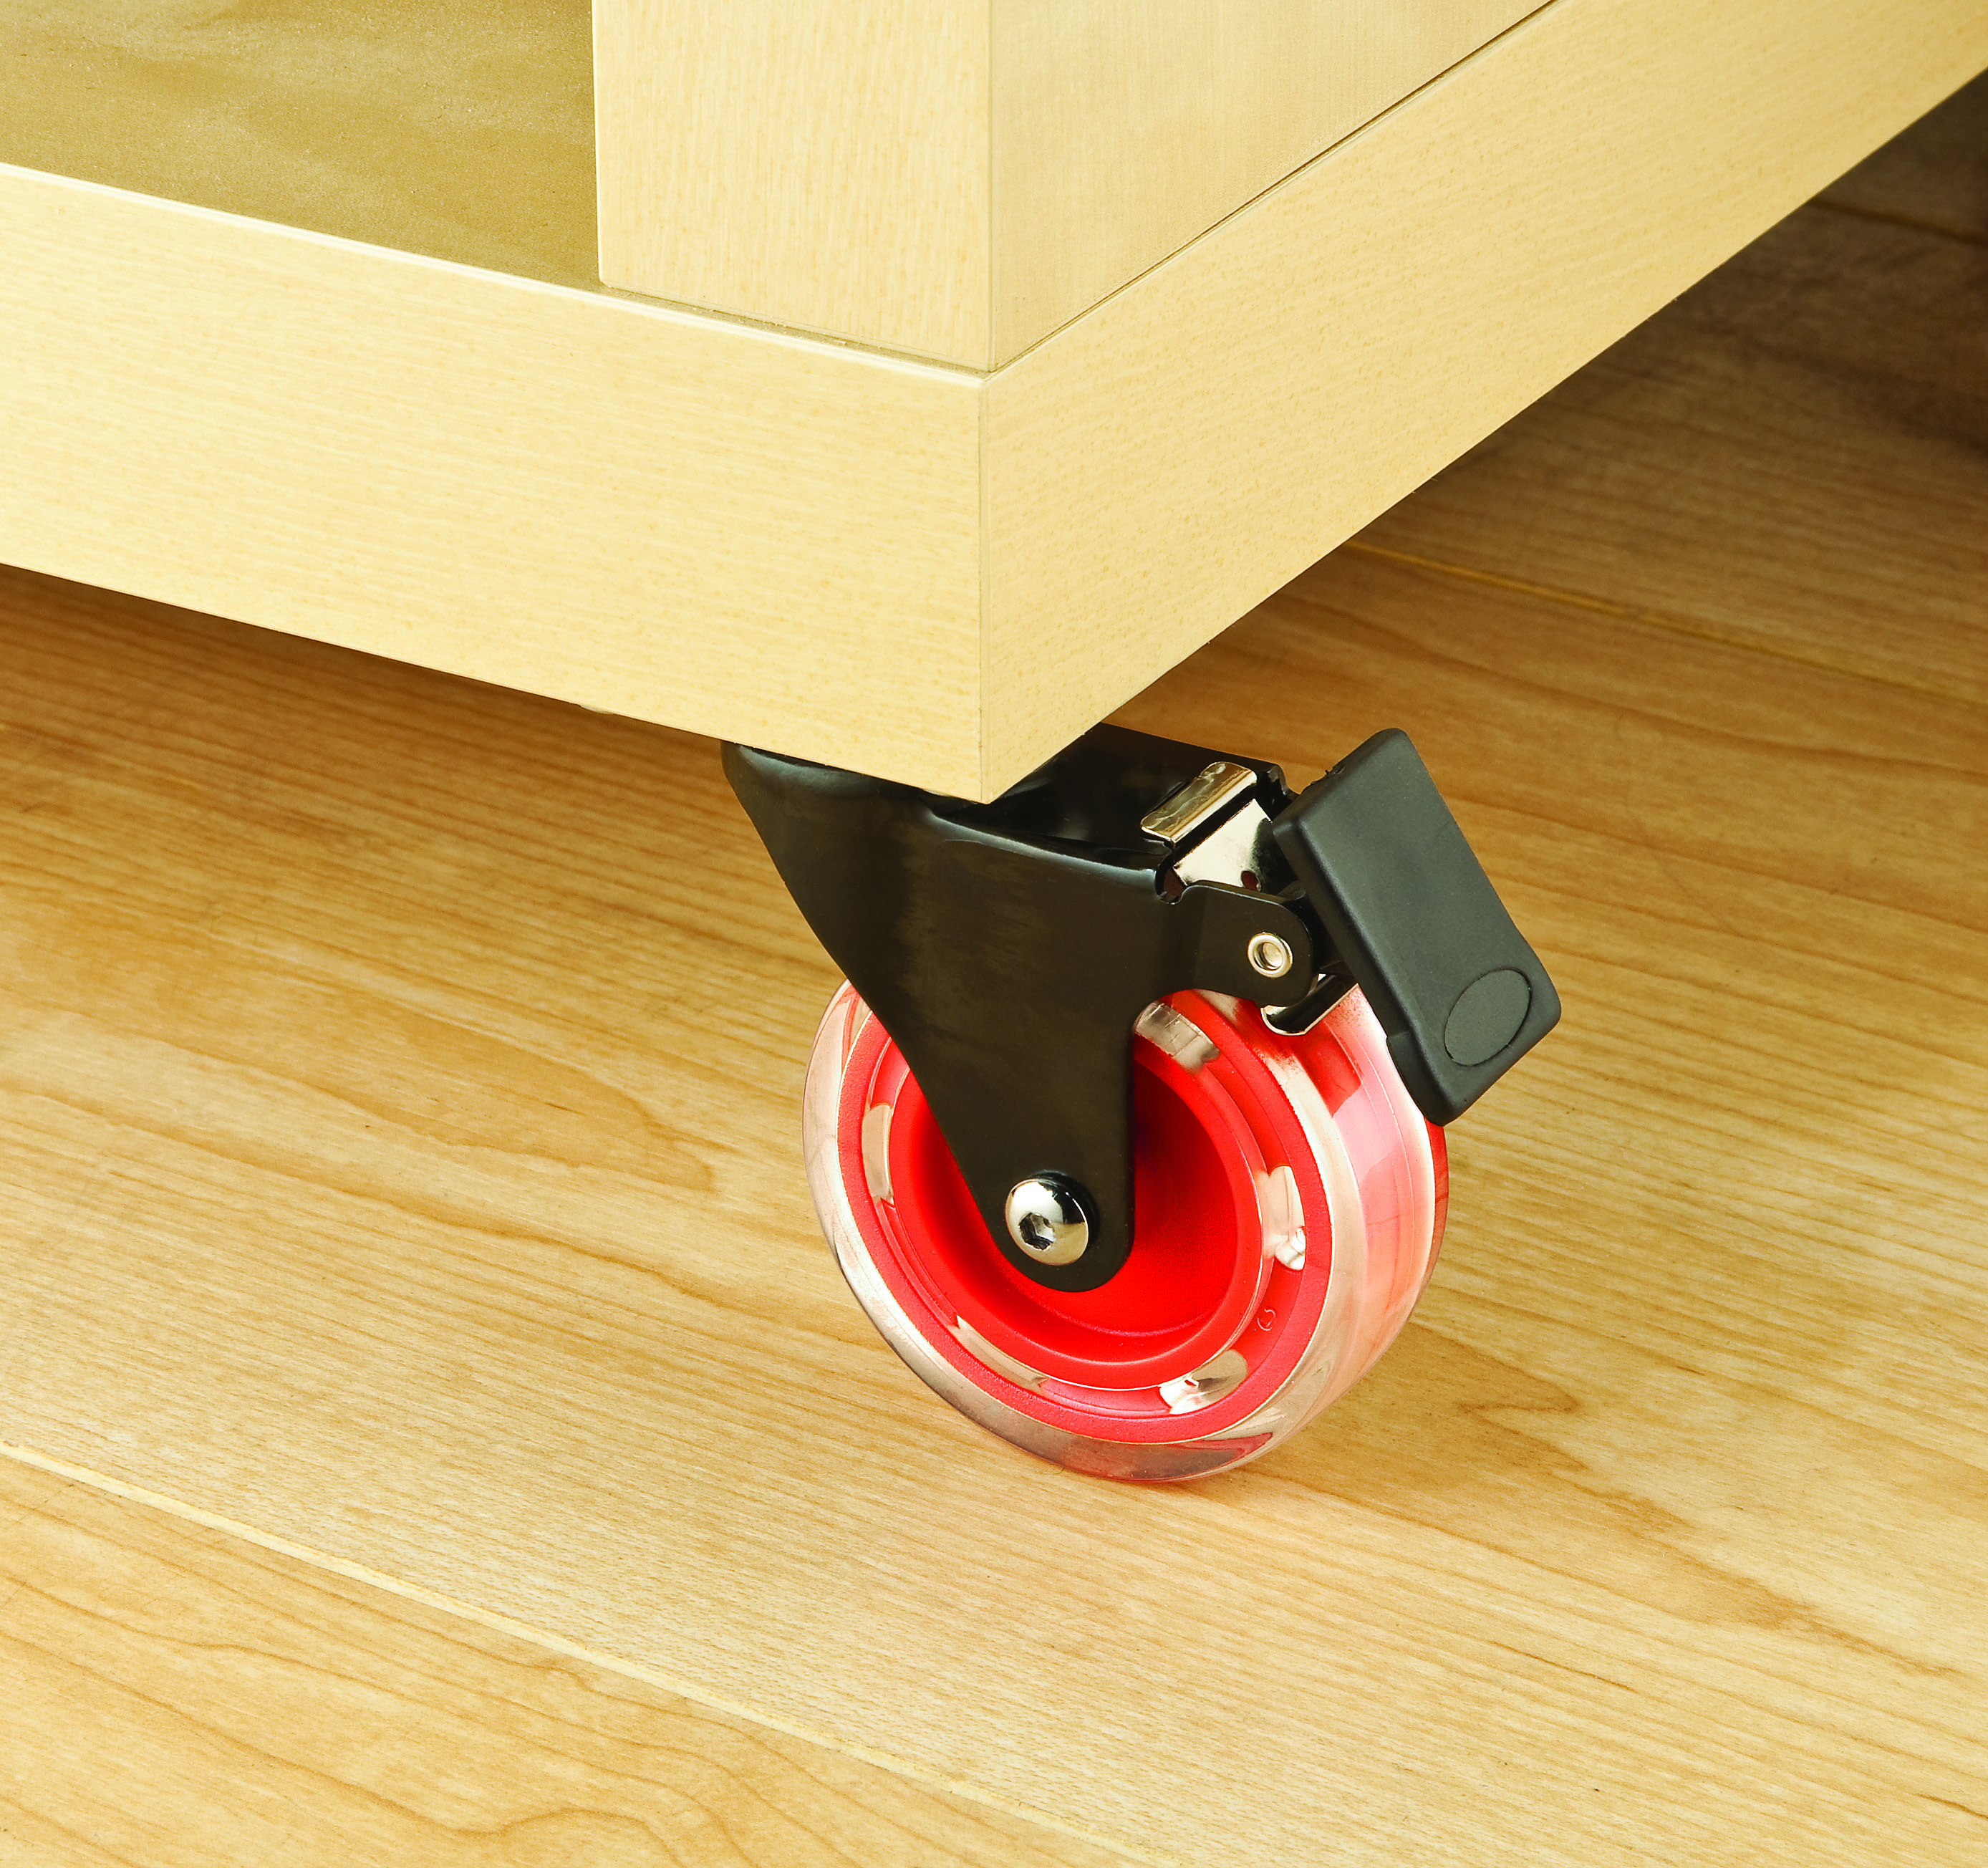 Casters wood stem furniture casters metal furniture casters - Lightweight Low Profile Wheels In A Variety Of Colors U2014either Vibrant Or Subdued U2014lend A Fresh Look